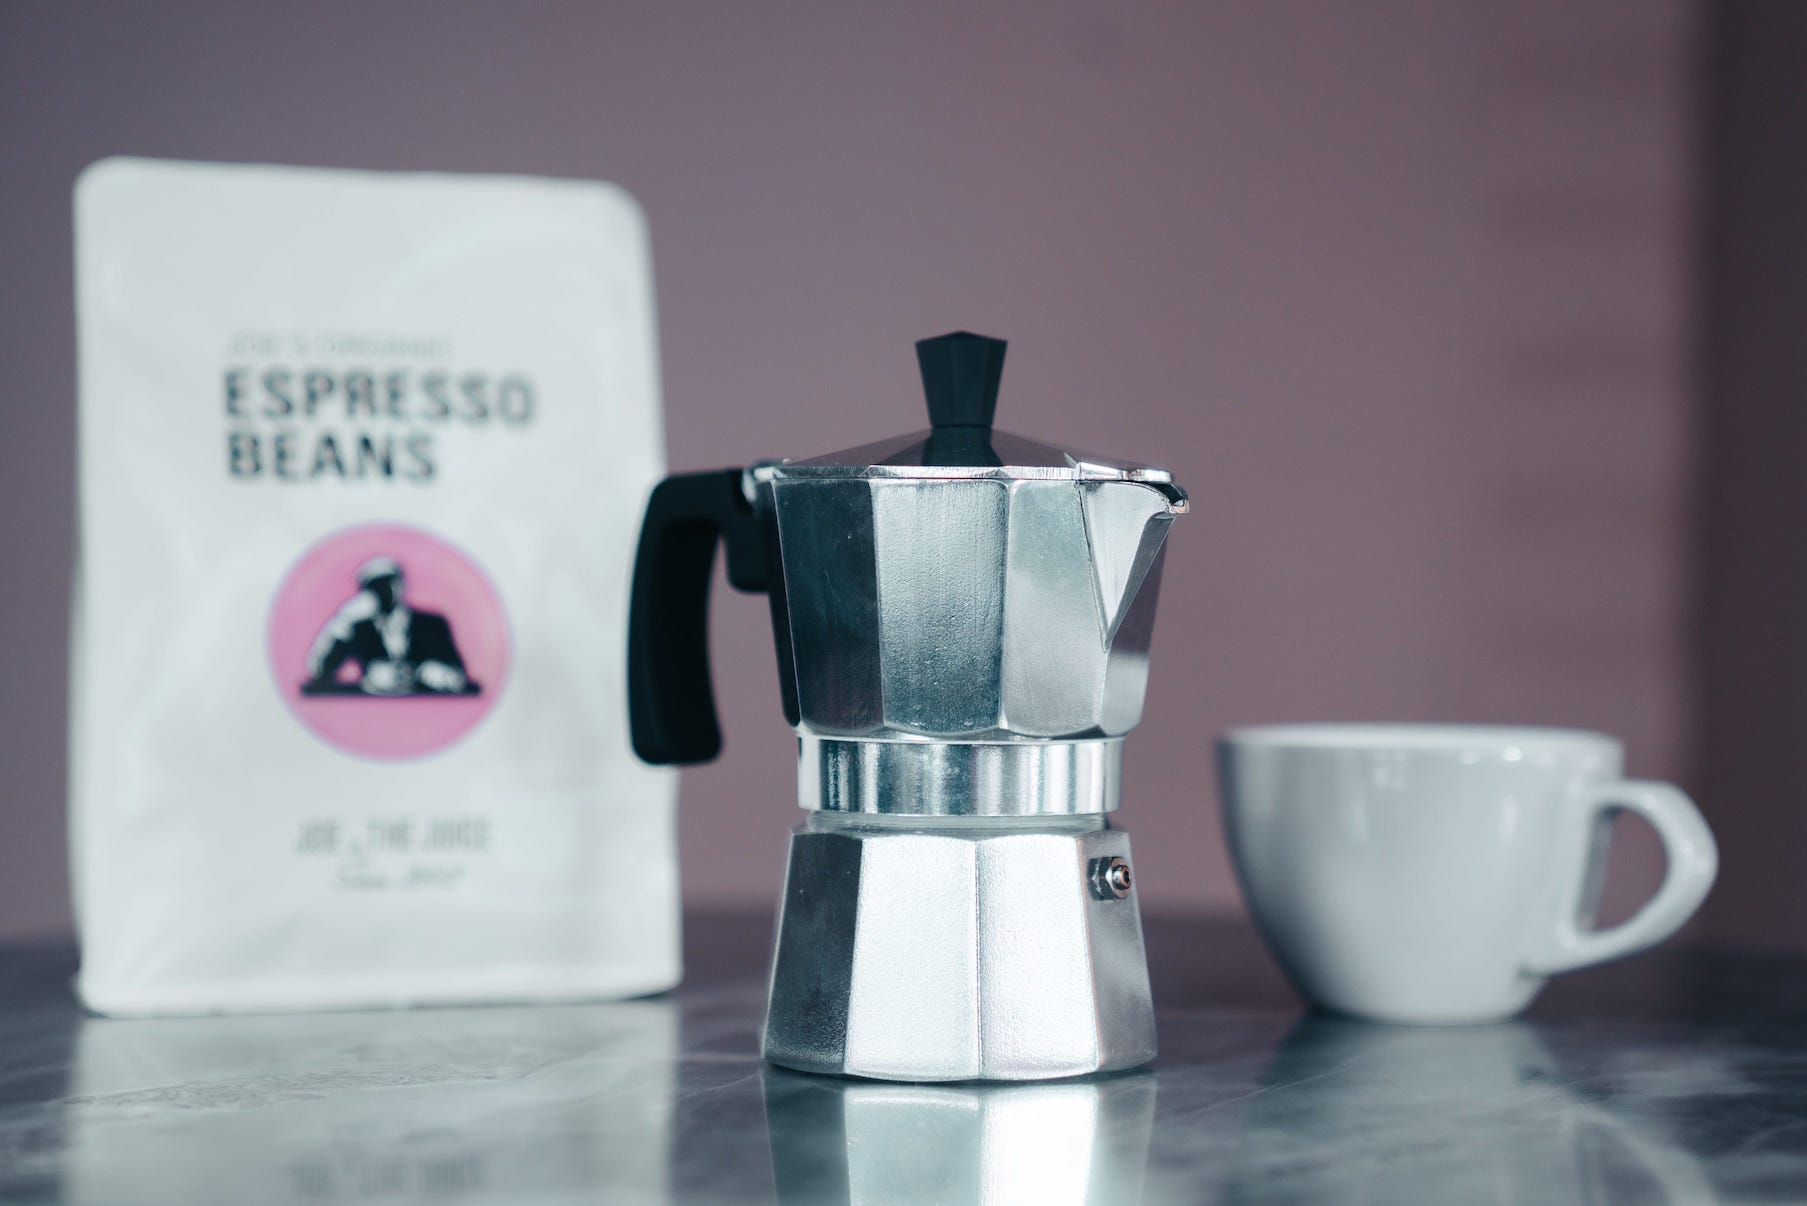 Brewing our coffee on the legendary Bialetti moka pot will get you a dense espresso-like cup of coffee. This little wonder requires no electricity or fancy equipment.